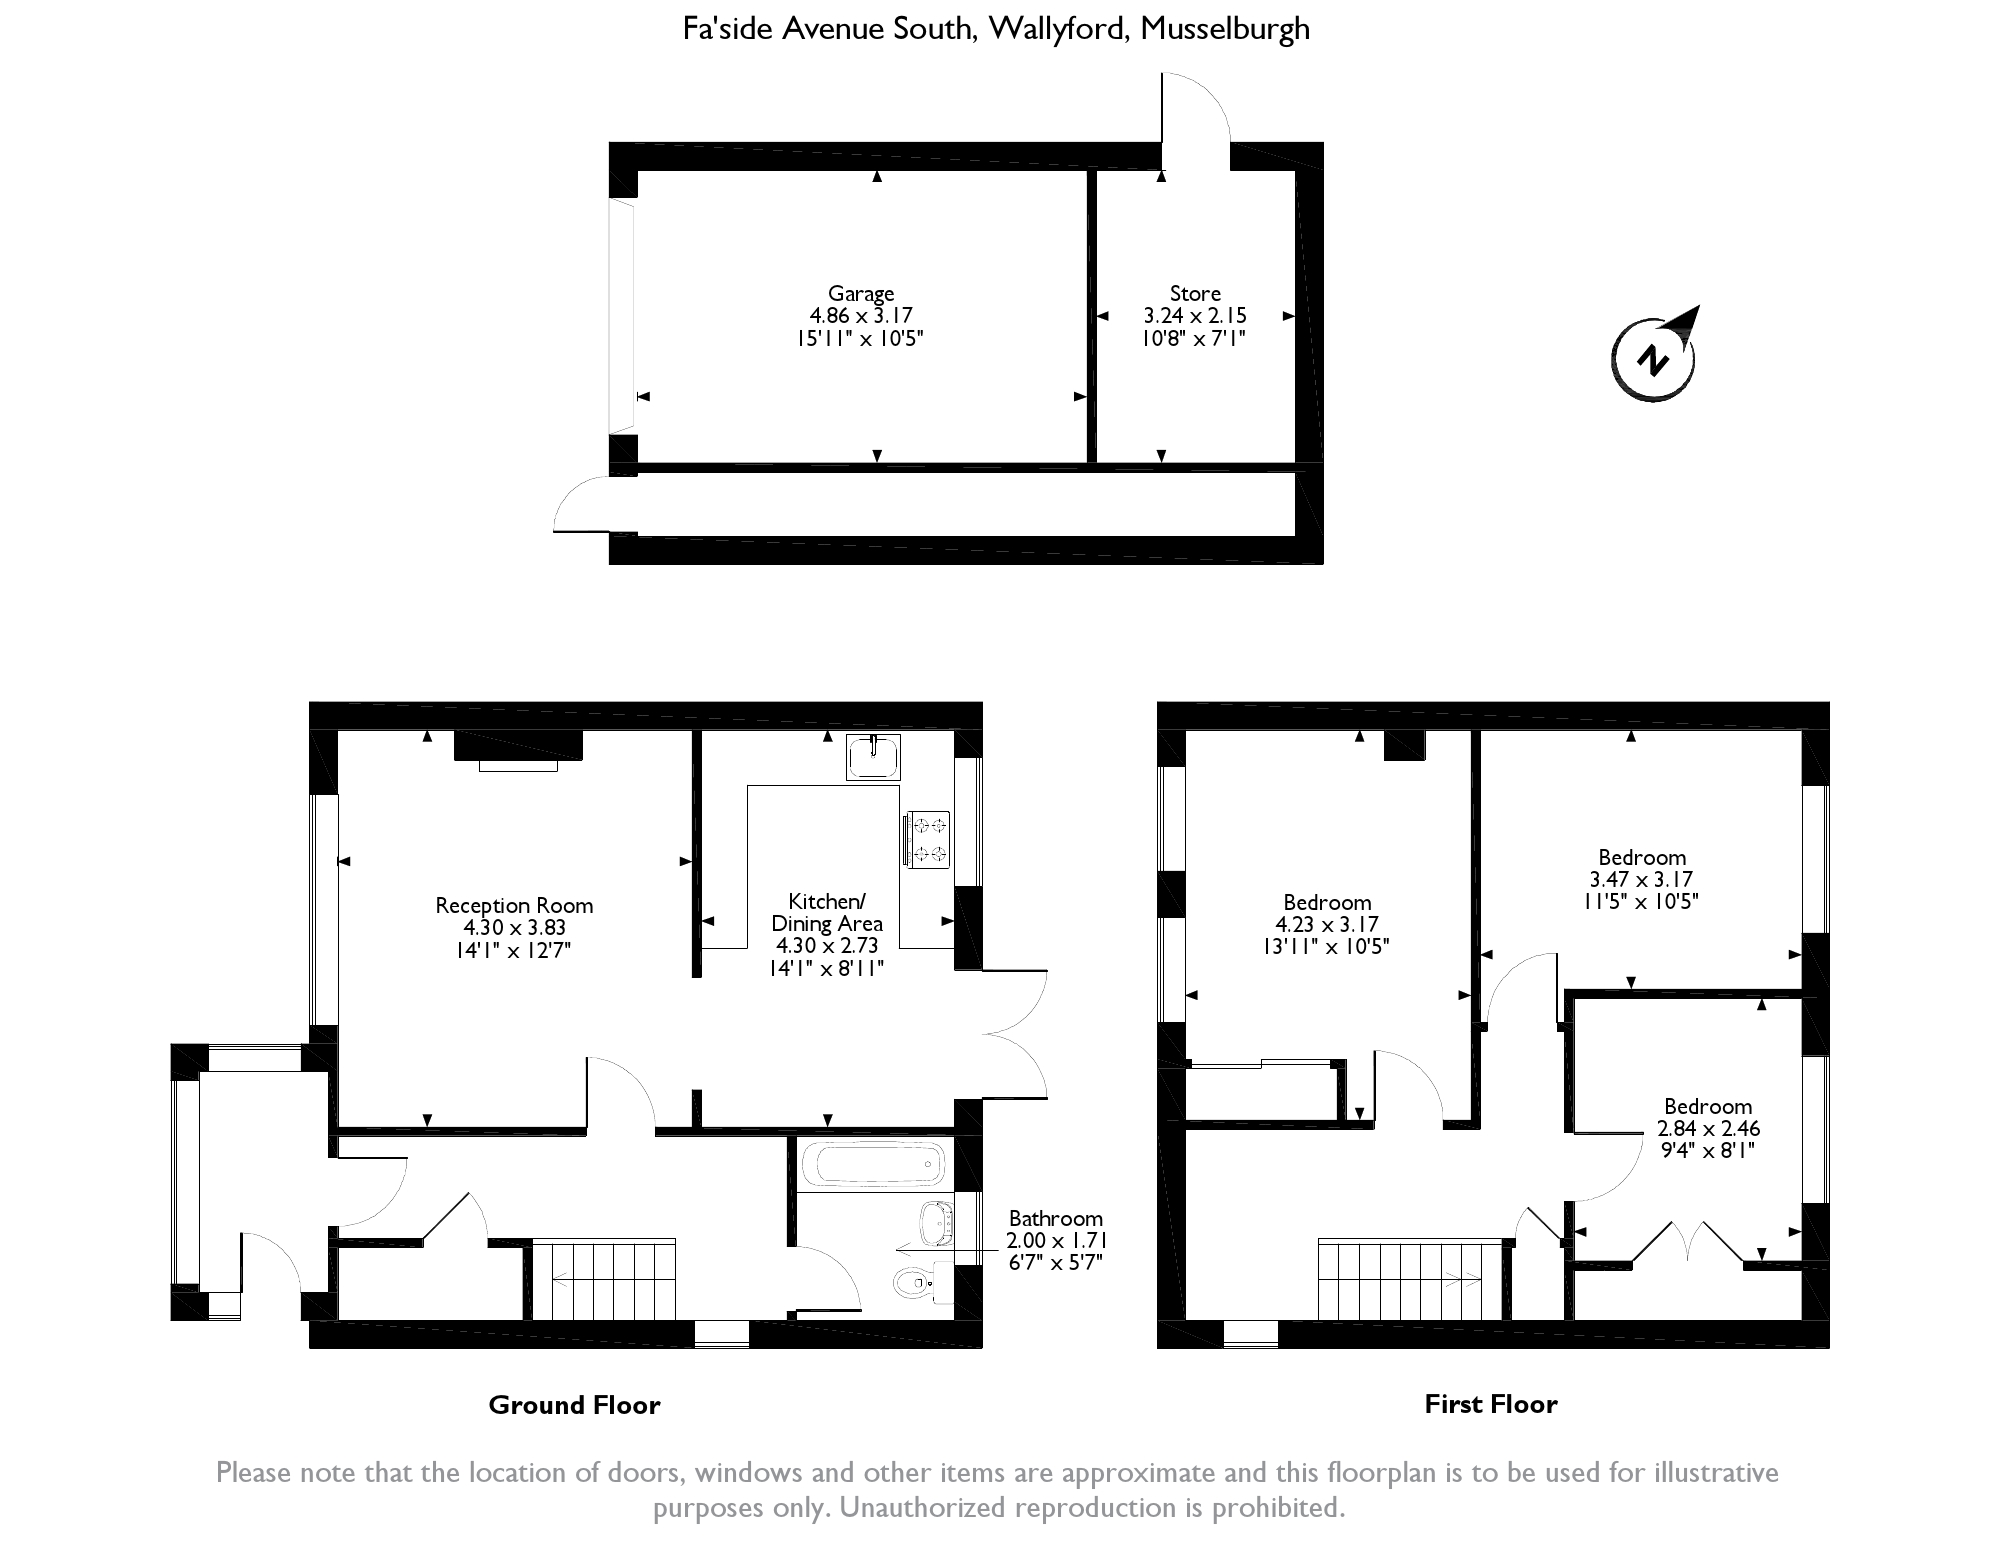 Fa'side Avenue South, Wallyford, Musselburgh, East Lothian, EH21 floor plan